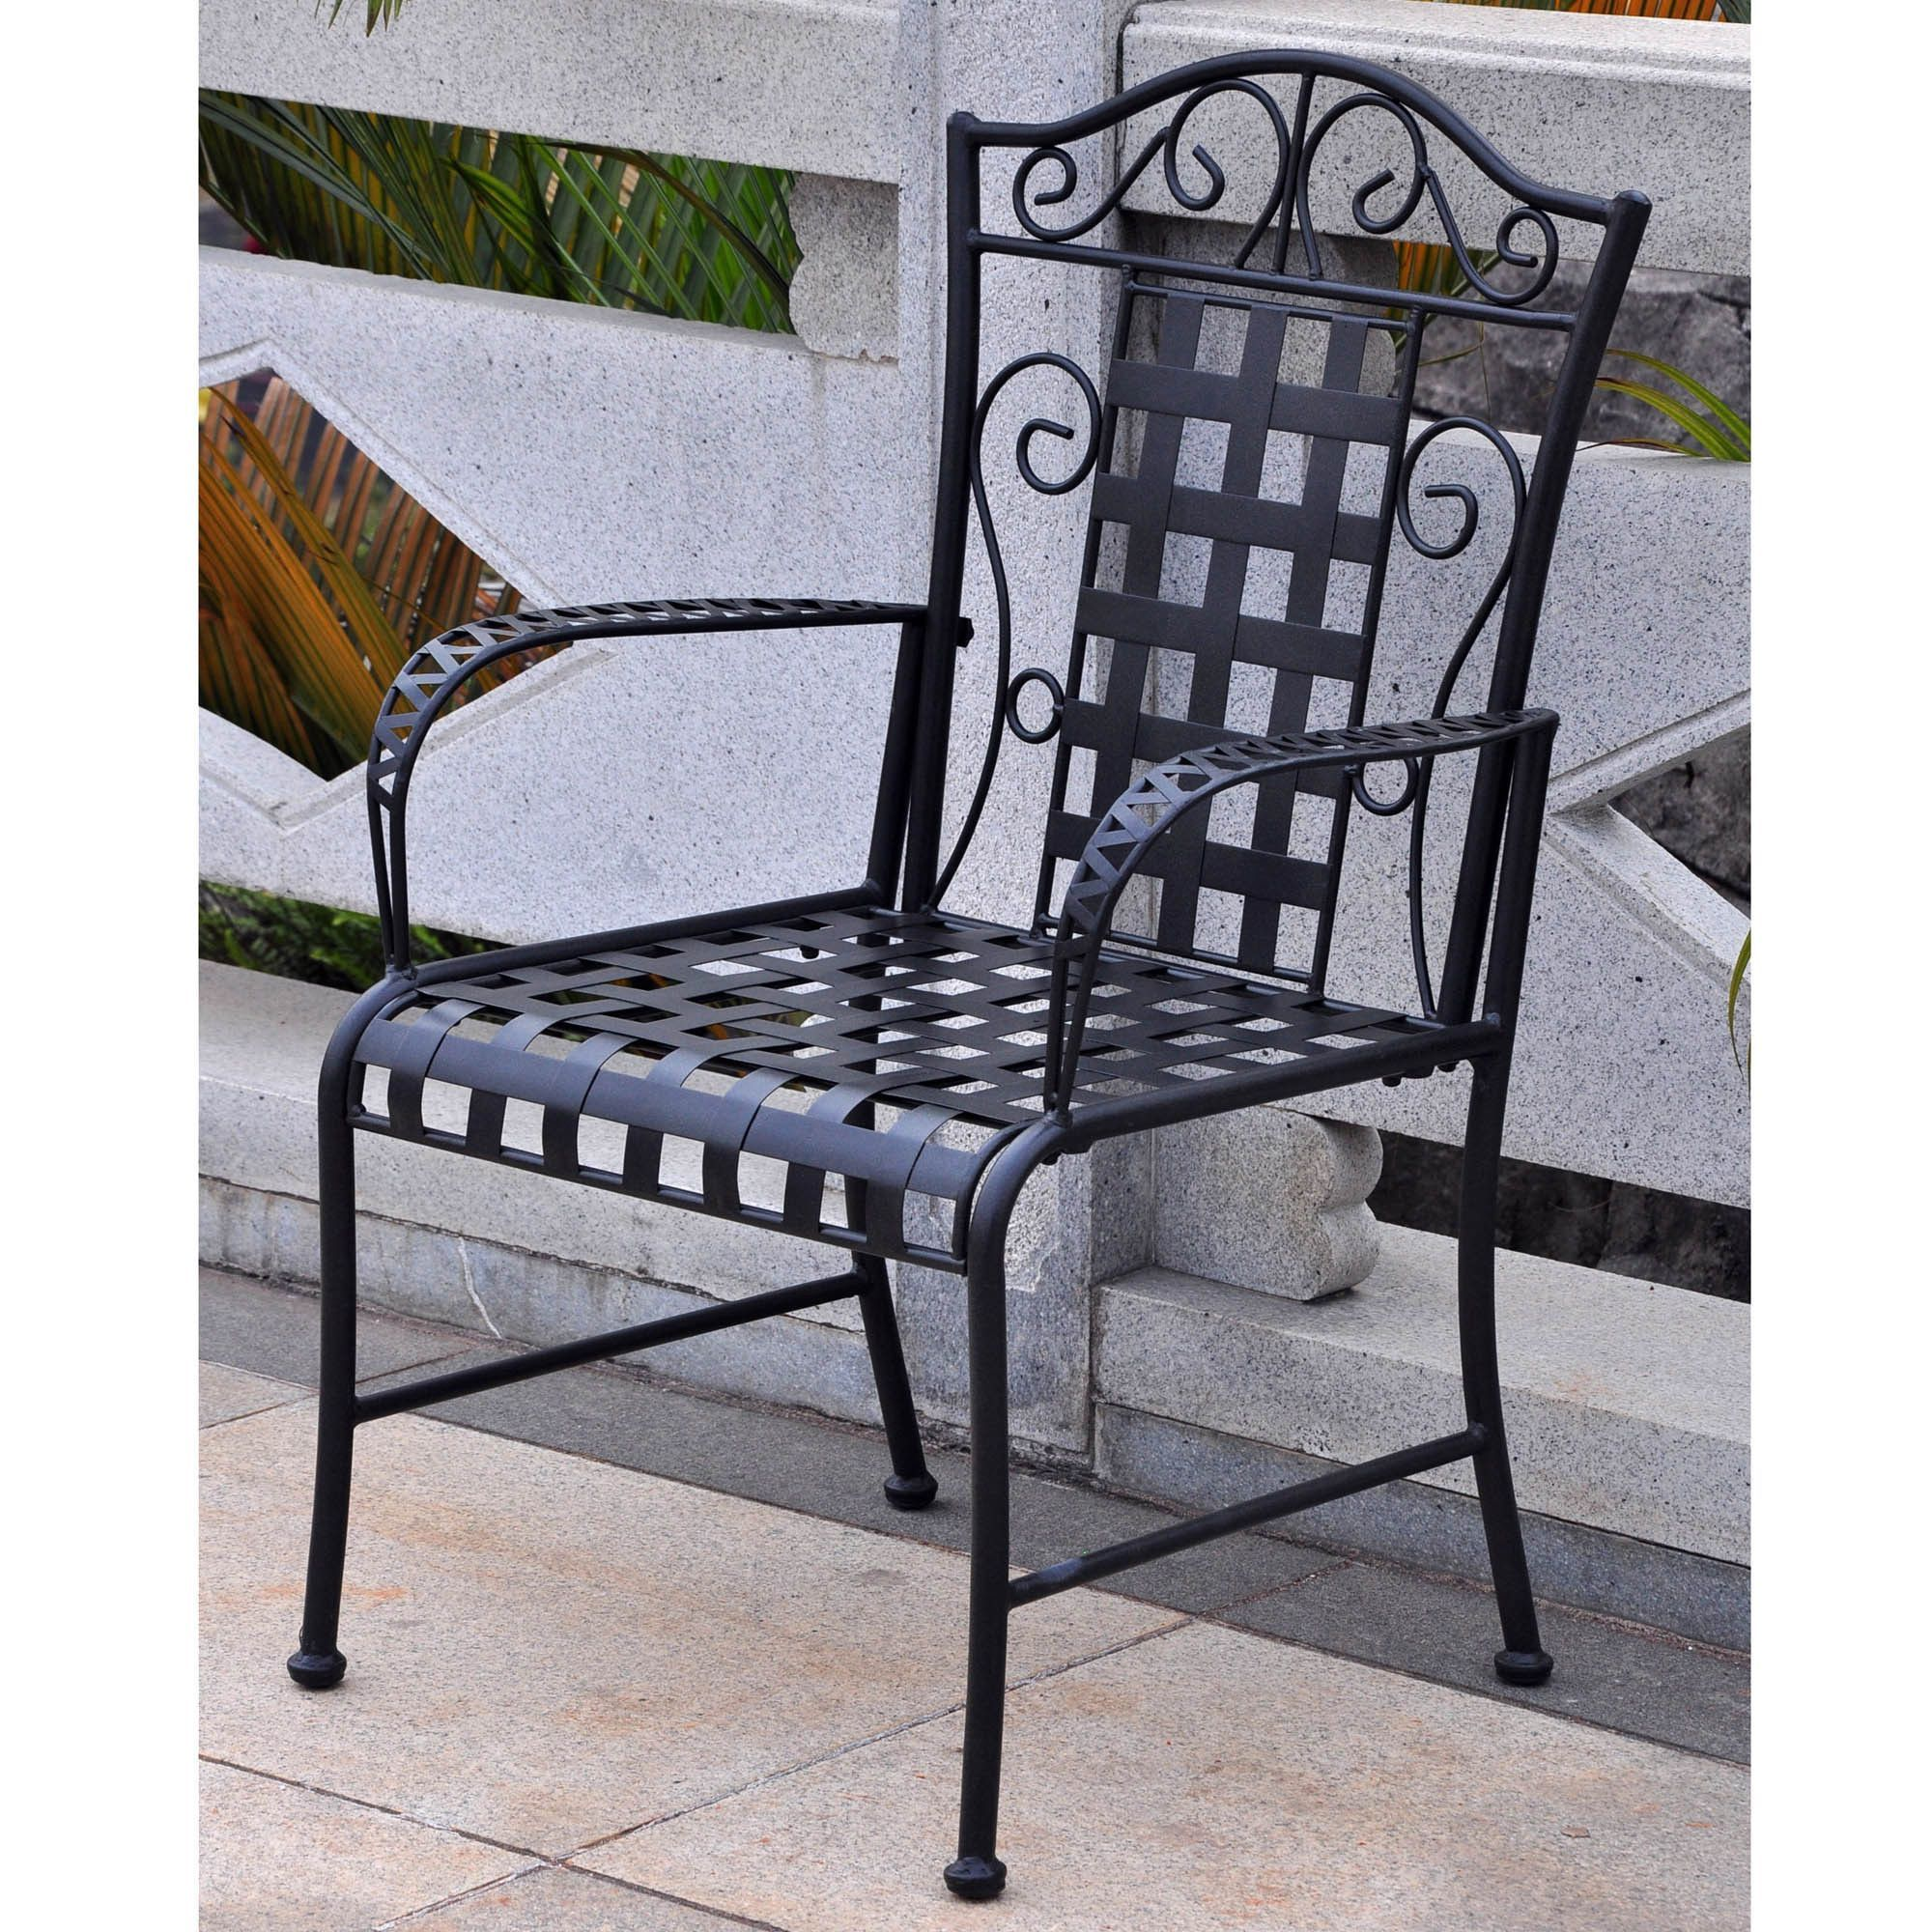 Add the elegance of a bygone era to your porch deck or patio